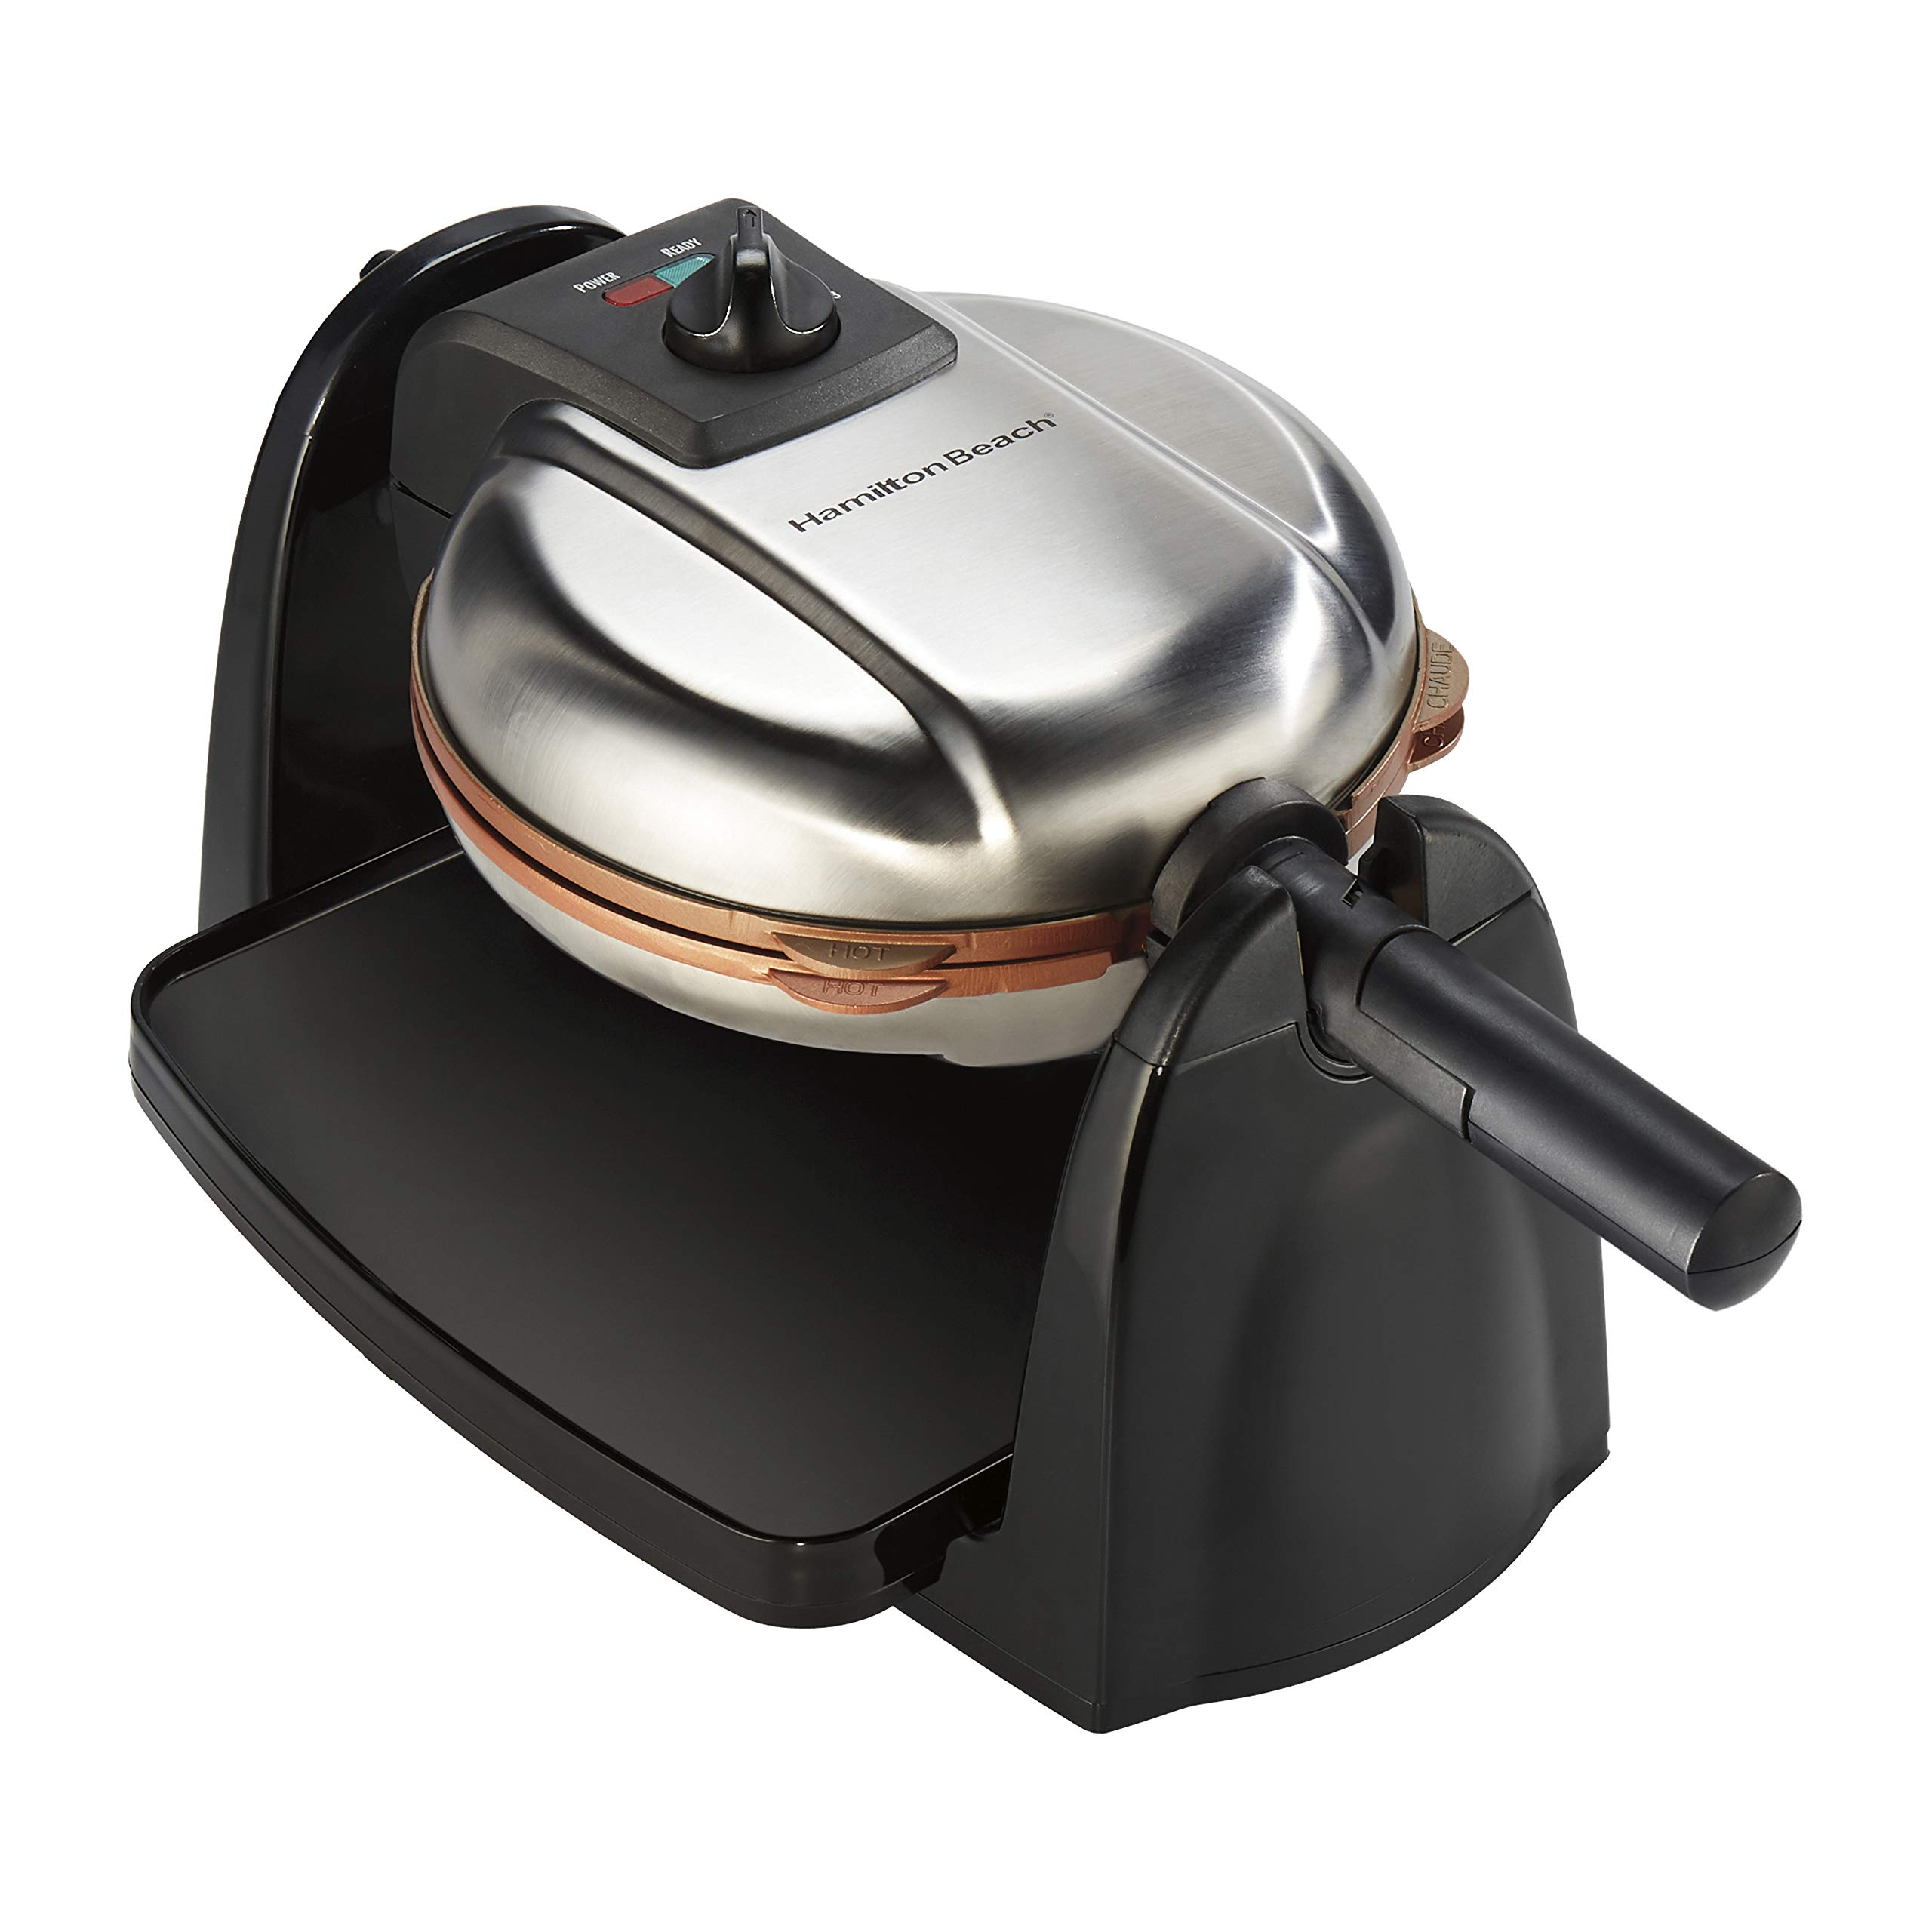 Hamilton Beach Flip Belgian Waffle Maker with Non-Stick Copper Ceramic Removable Plates, Browning Control, Drip Tray, Stainless Steel (26031) by Hamilton Beach